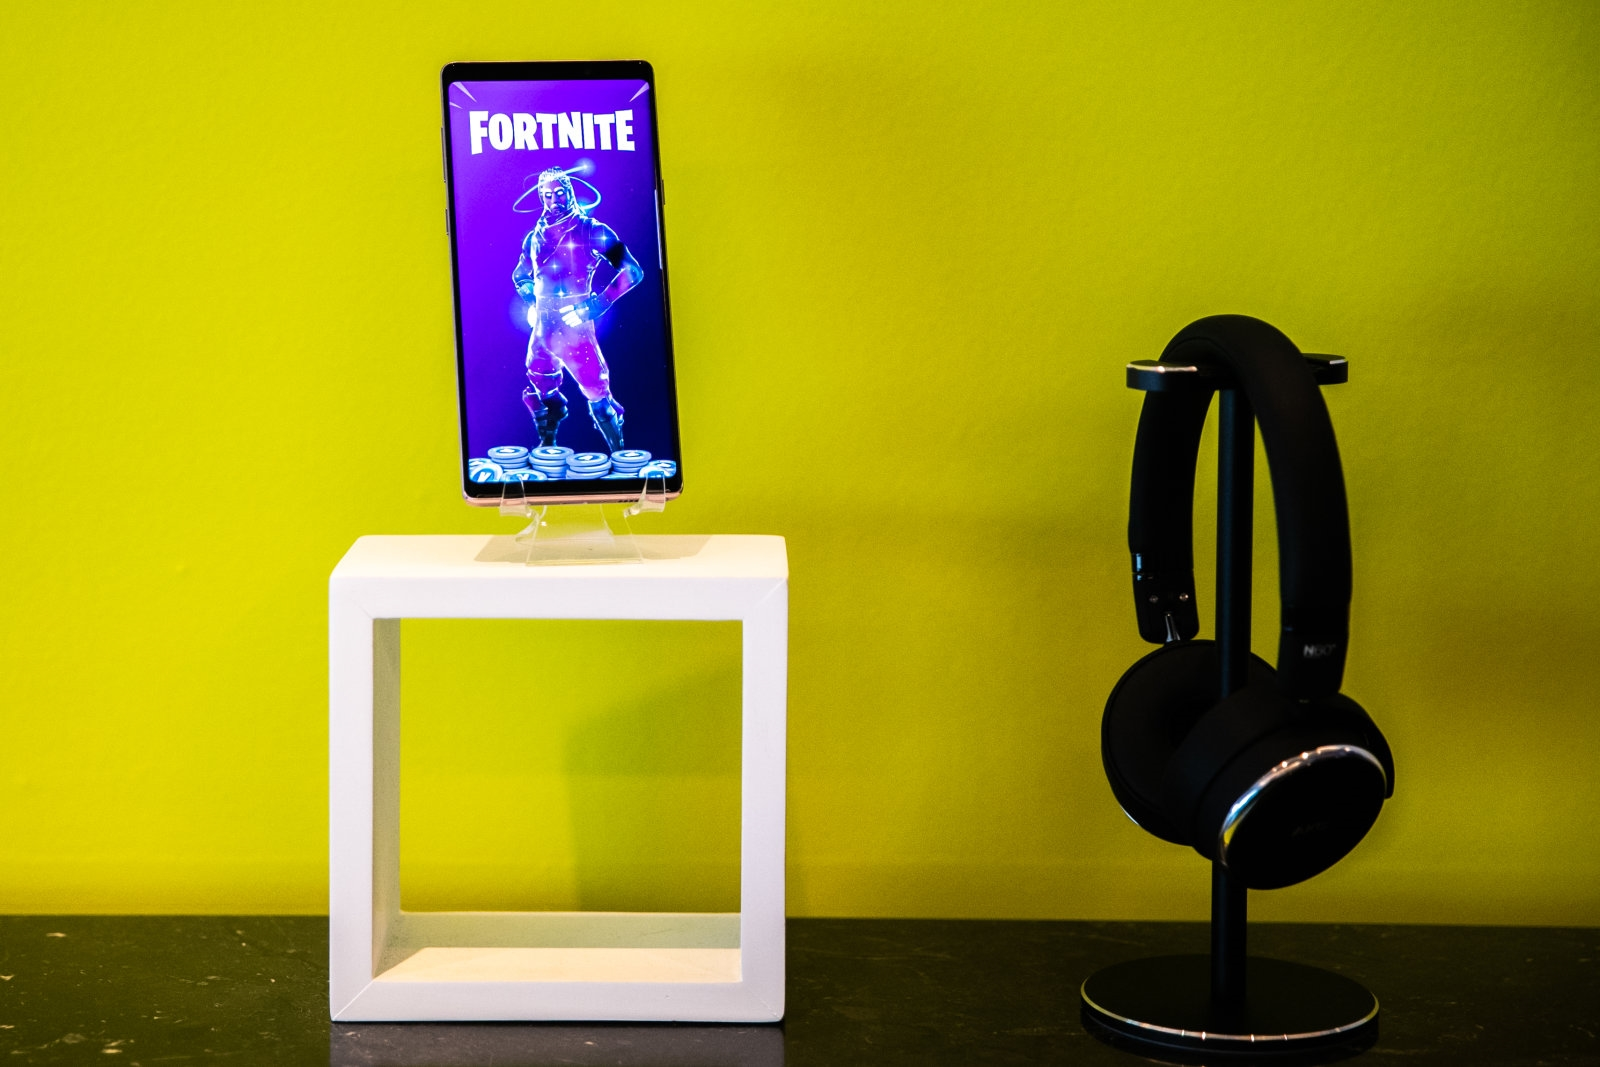 'Fortnite' Android beta invitations open to non-Samsung devices | DeviceDaily.com